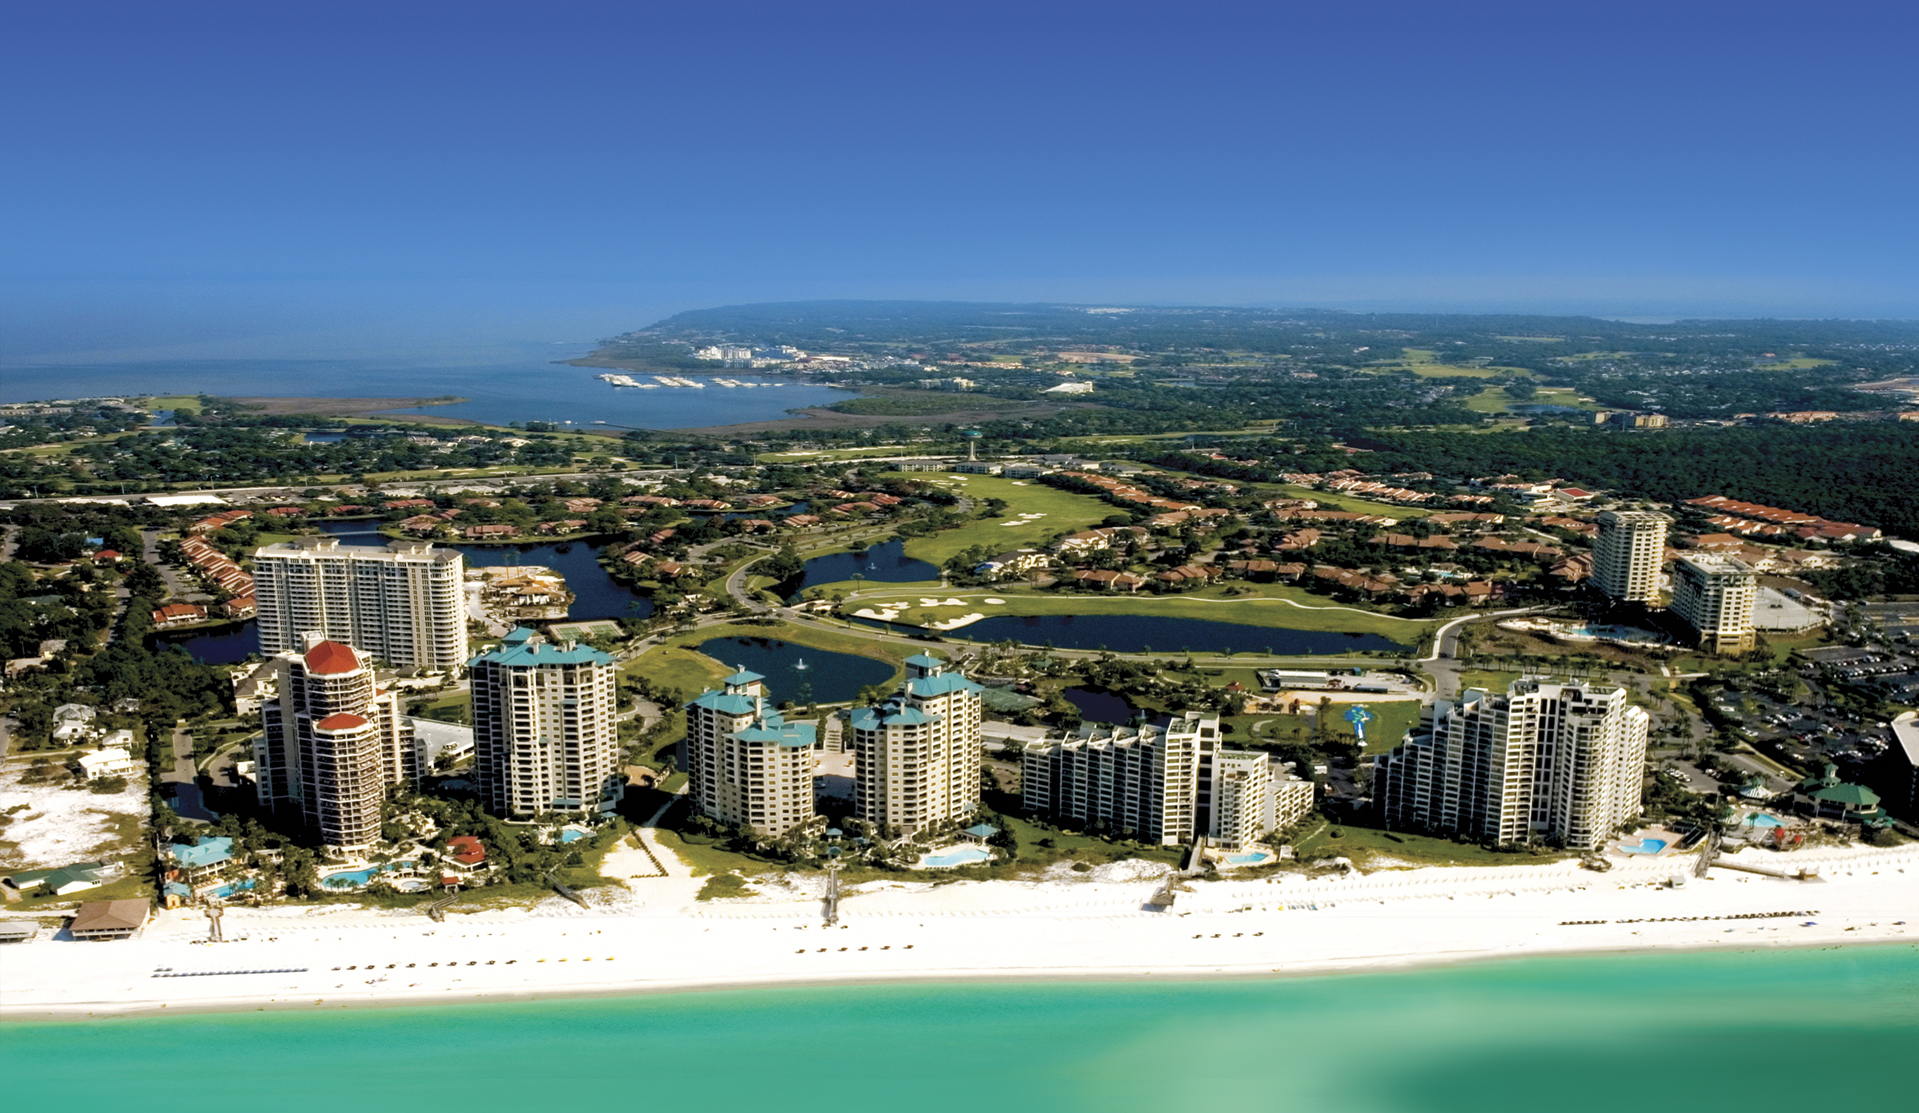 The Sandestin Resort - site of the 2017 Symposium - from the white sand beaches to the blue bay